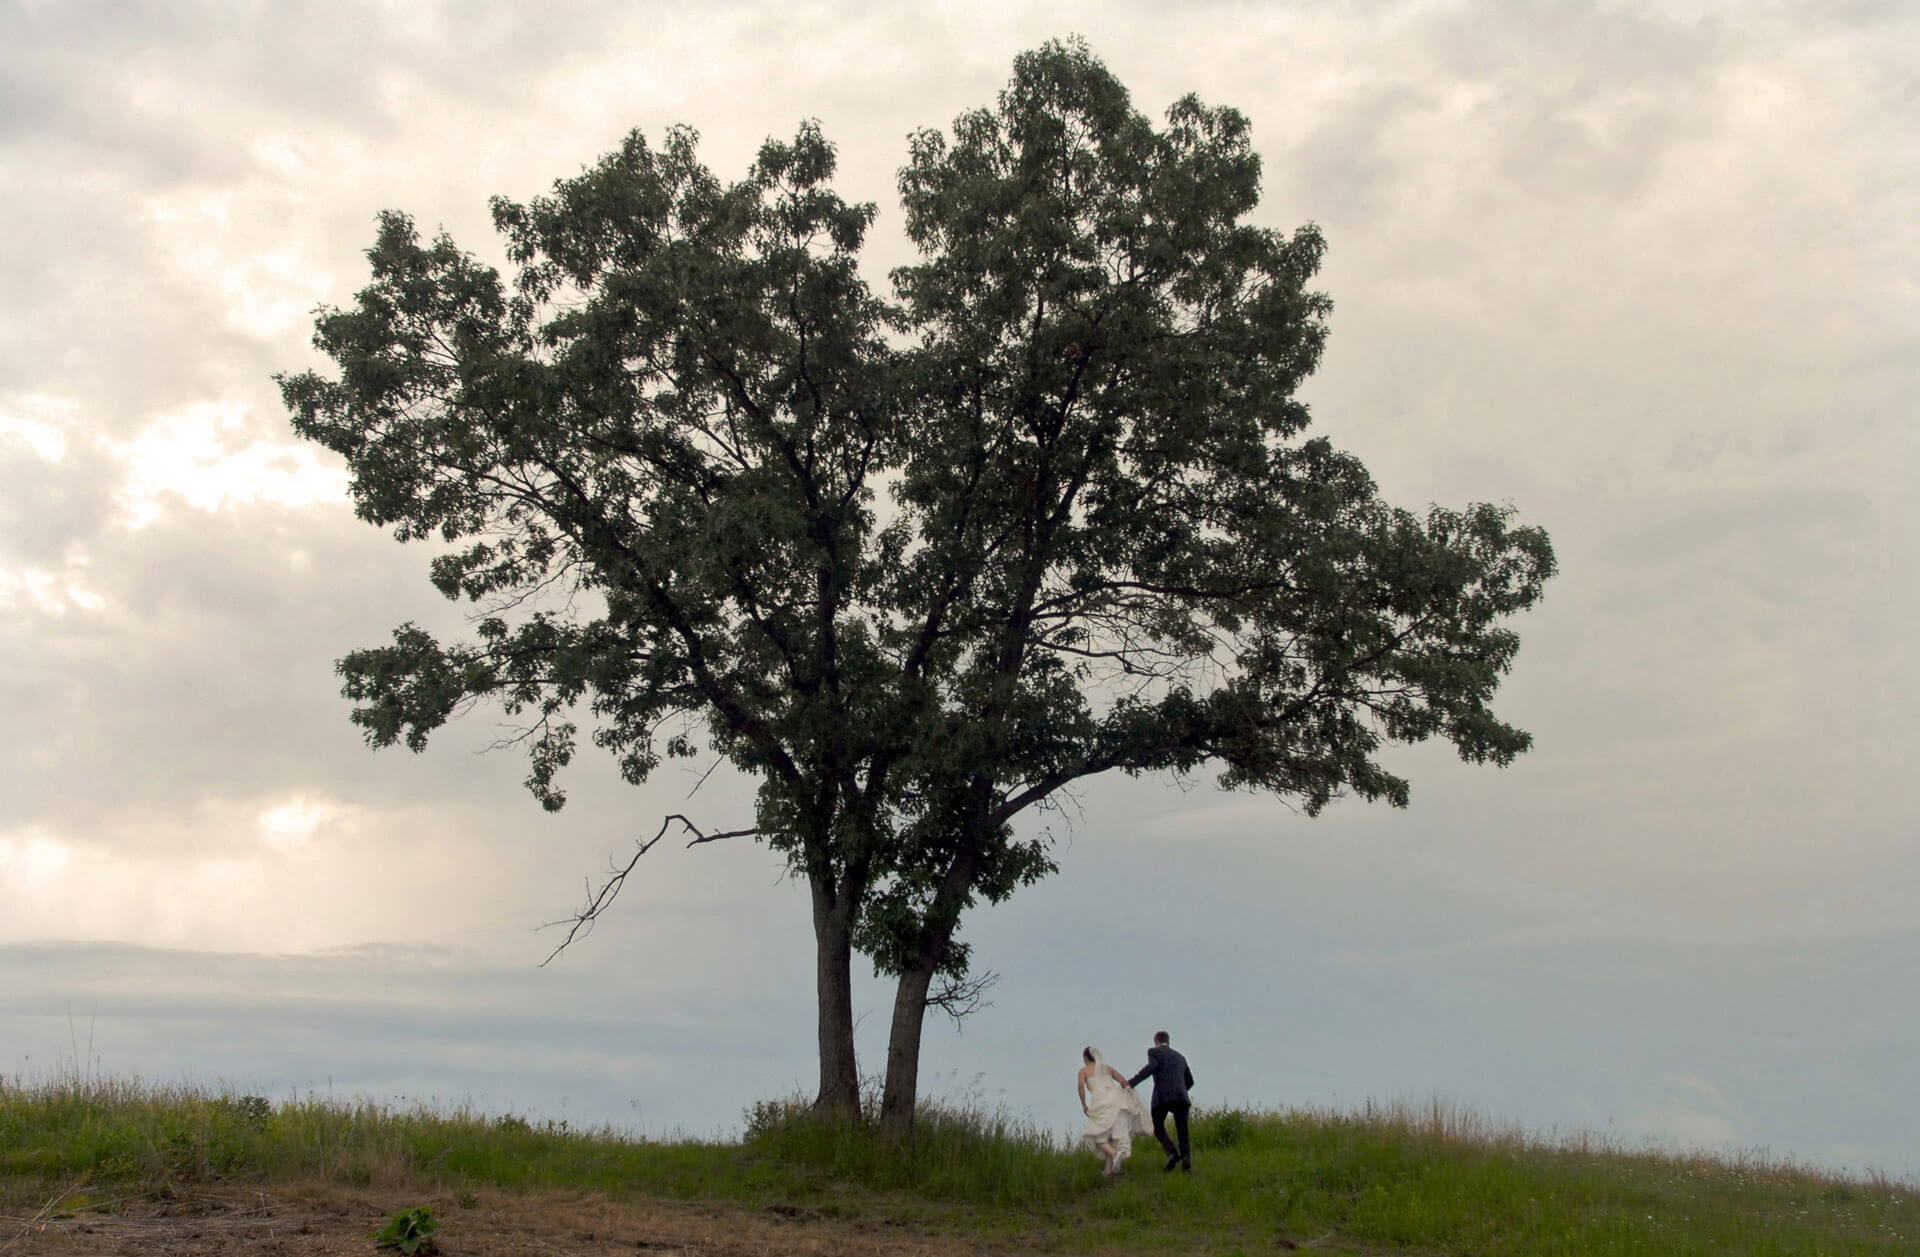 A Michigan couple head up the hill at Indian Springs wedding venue during a spring storm for a dramatic wedding photo.